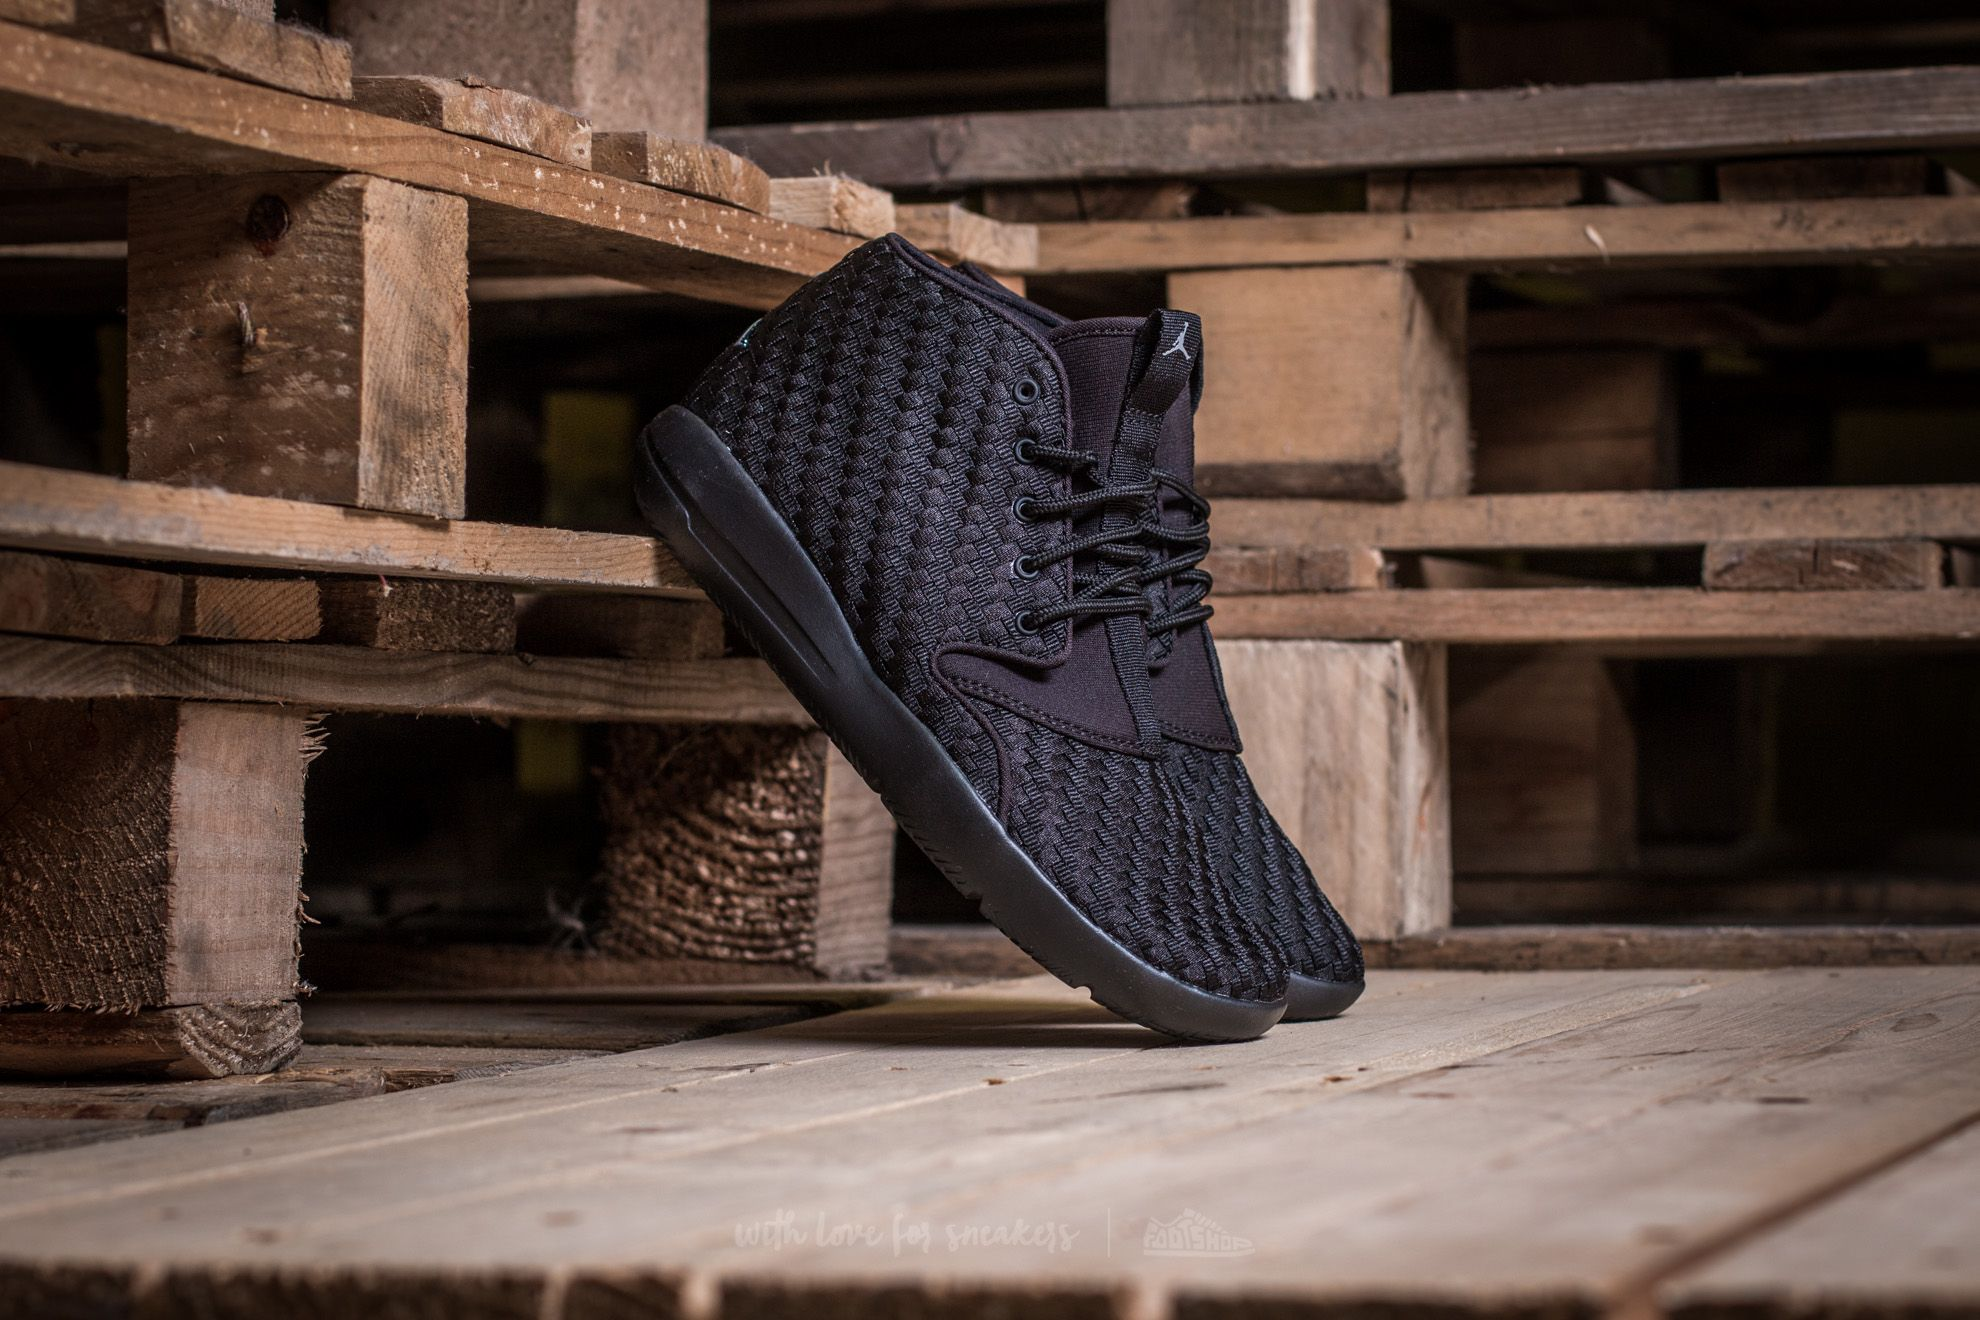 c12fa823bde Jordan Eclipse Chukka Woven BG Black  Cool Grey